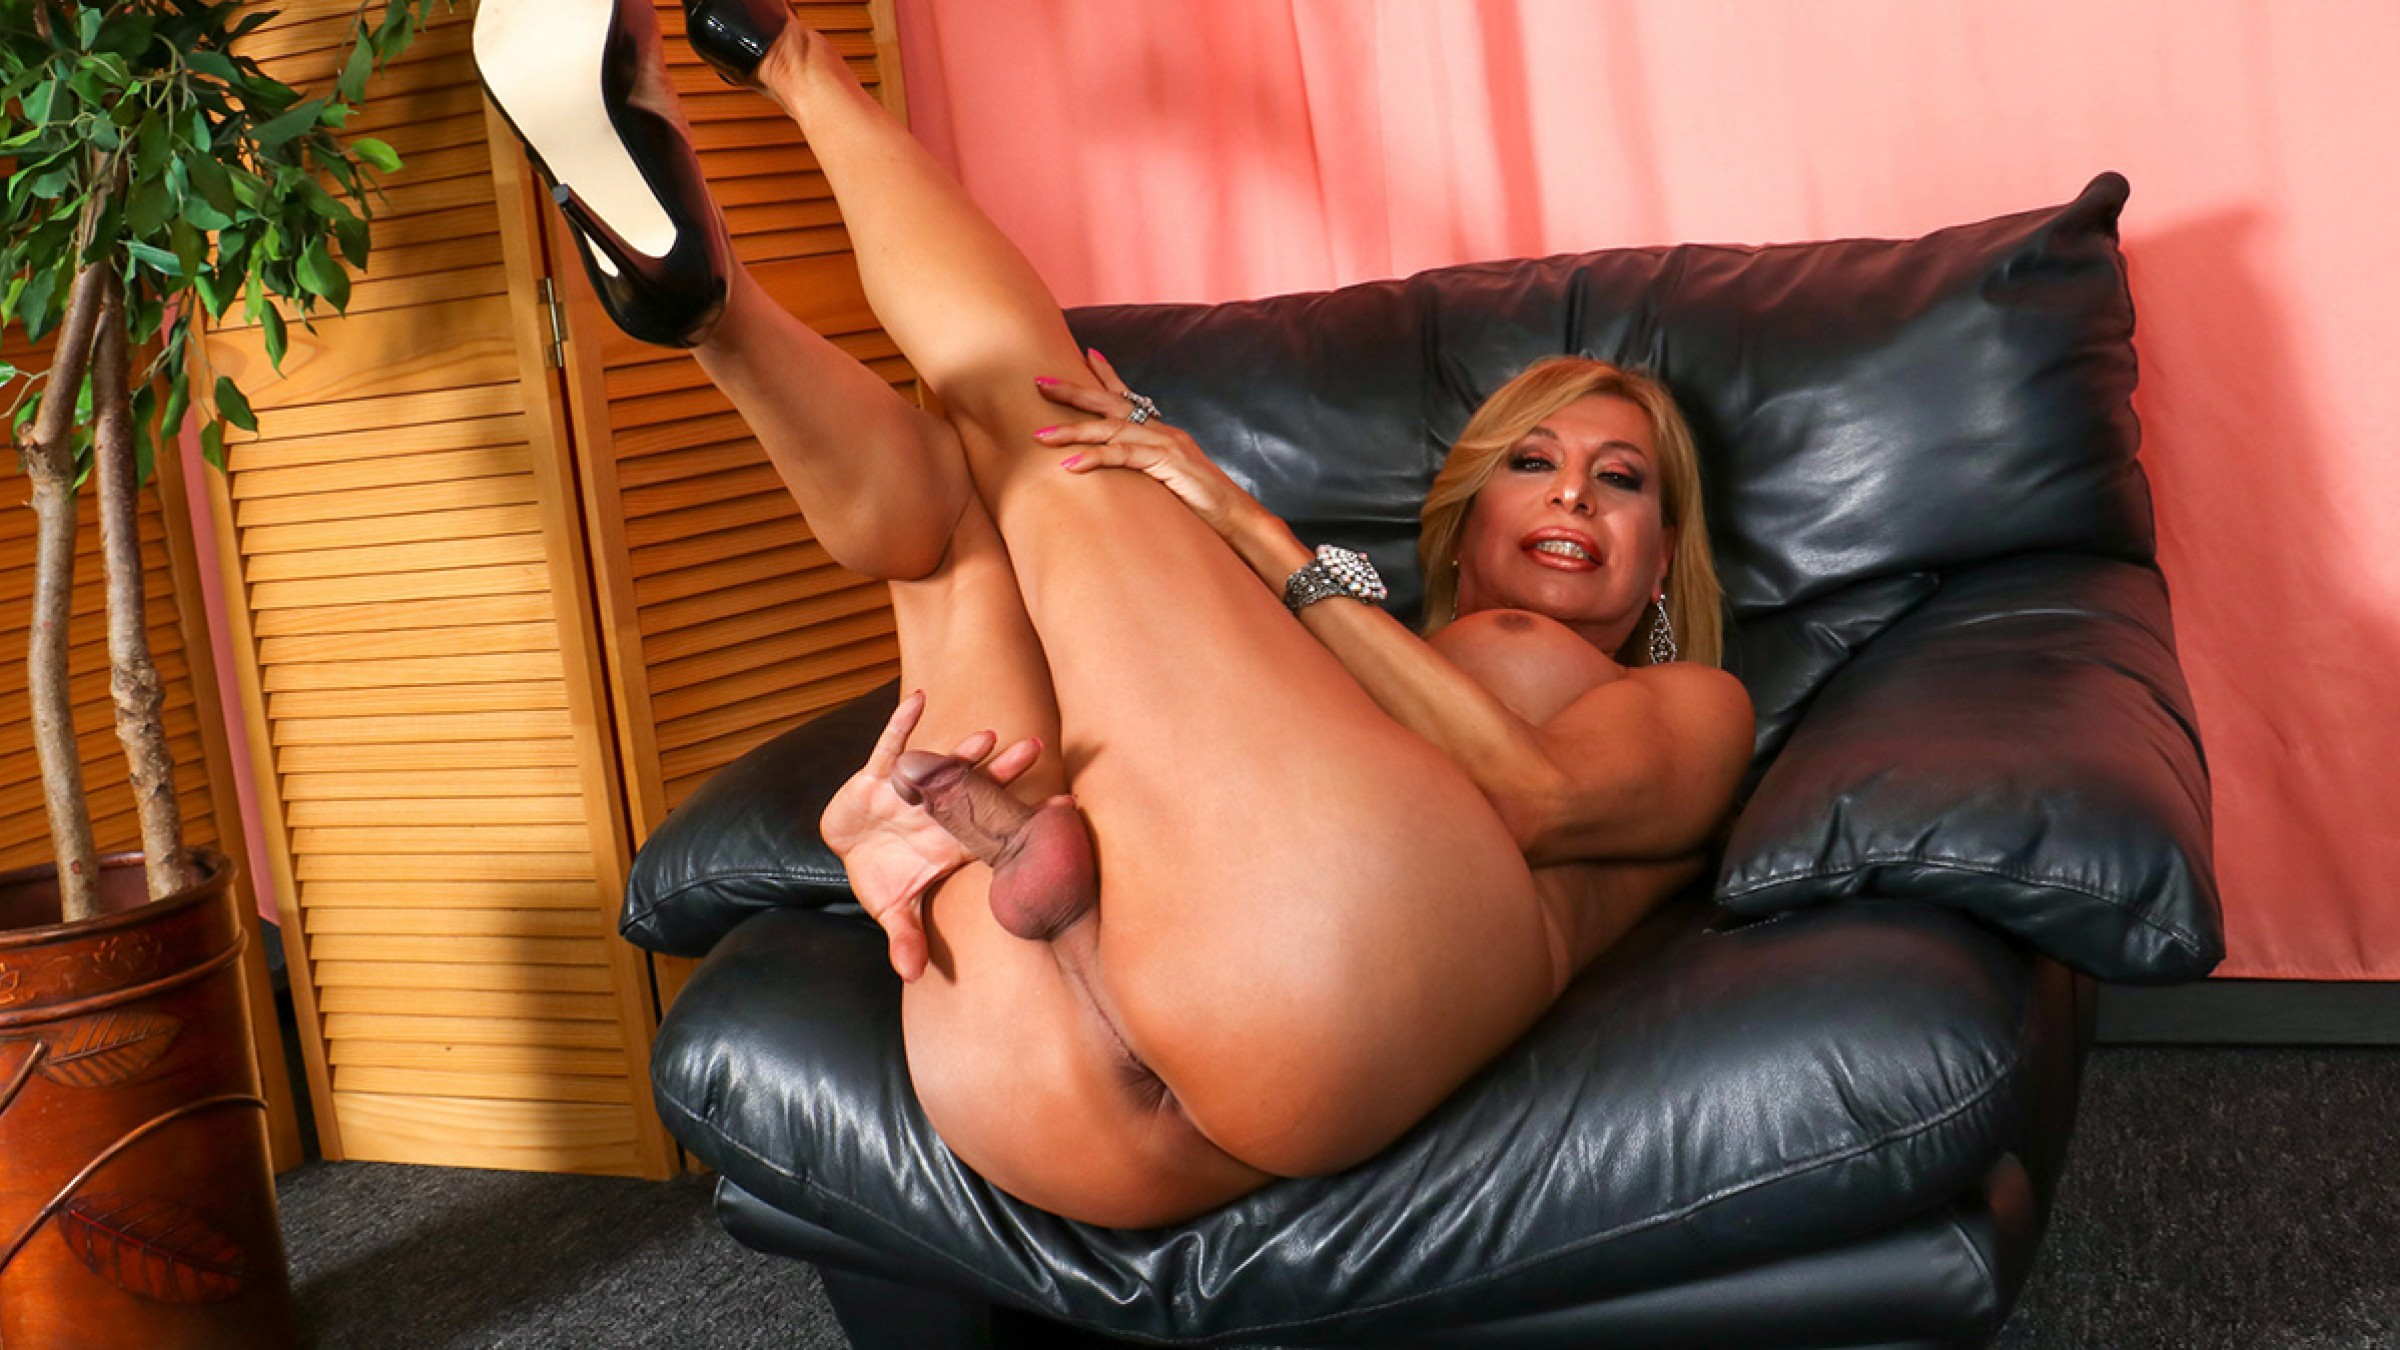 TGirl40 Fabiola Shows Herself Off!  Shemale XXX WEB-DL Groobynetwork